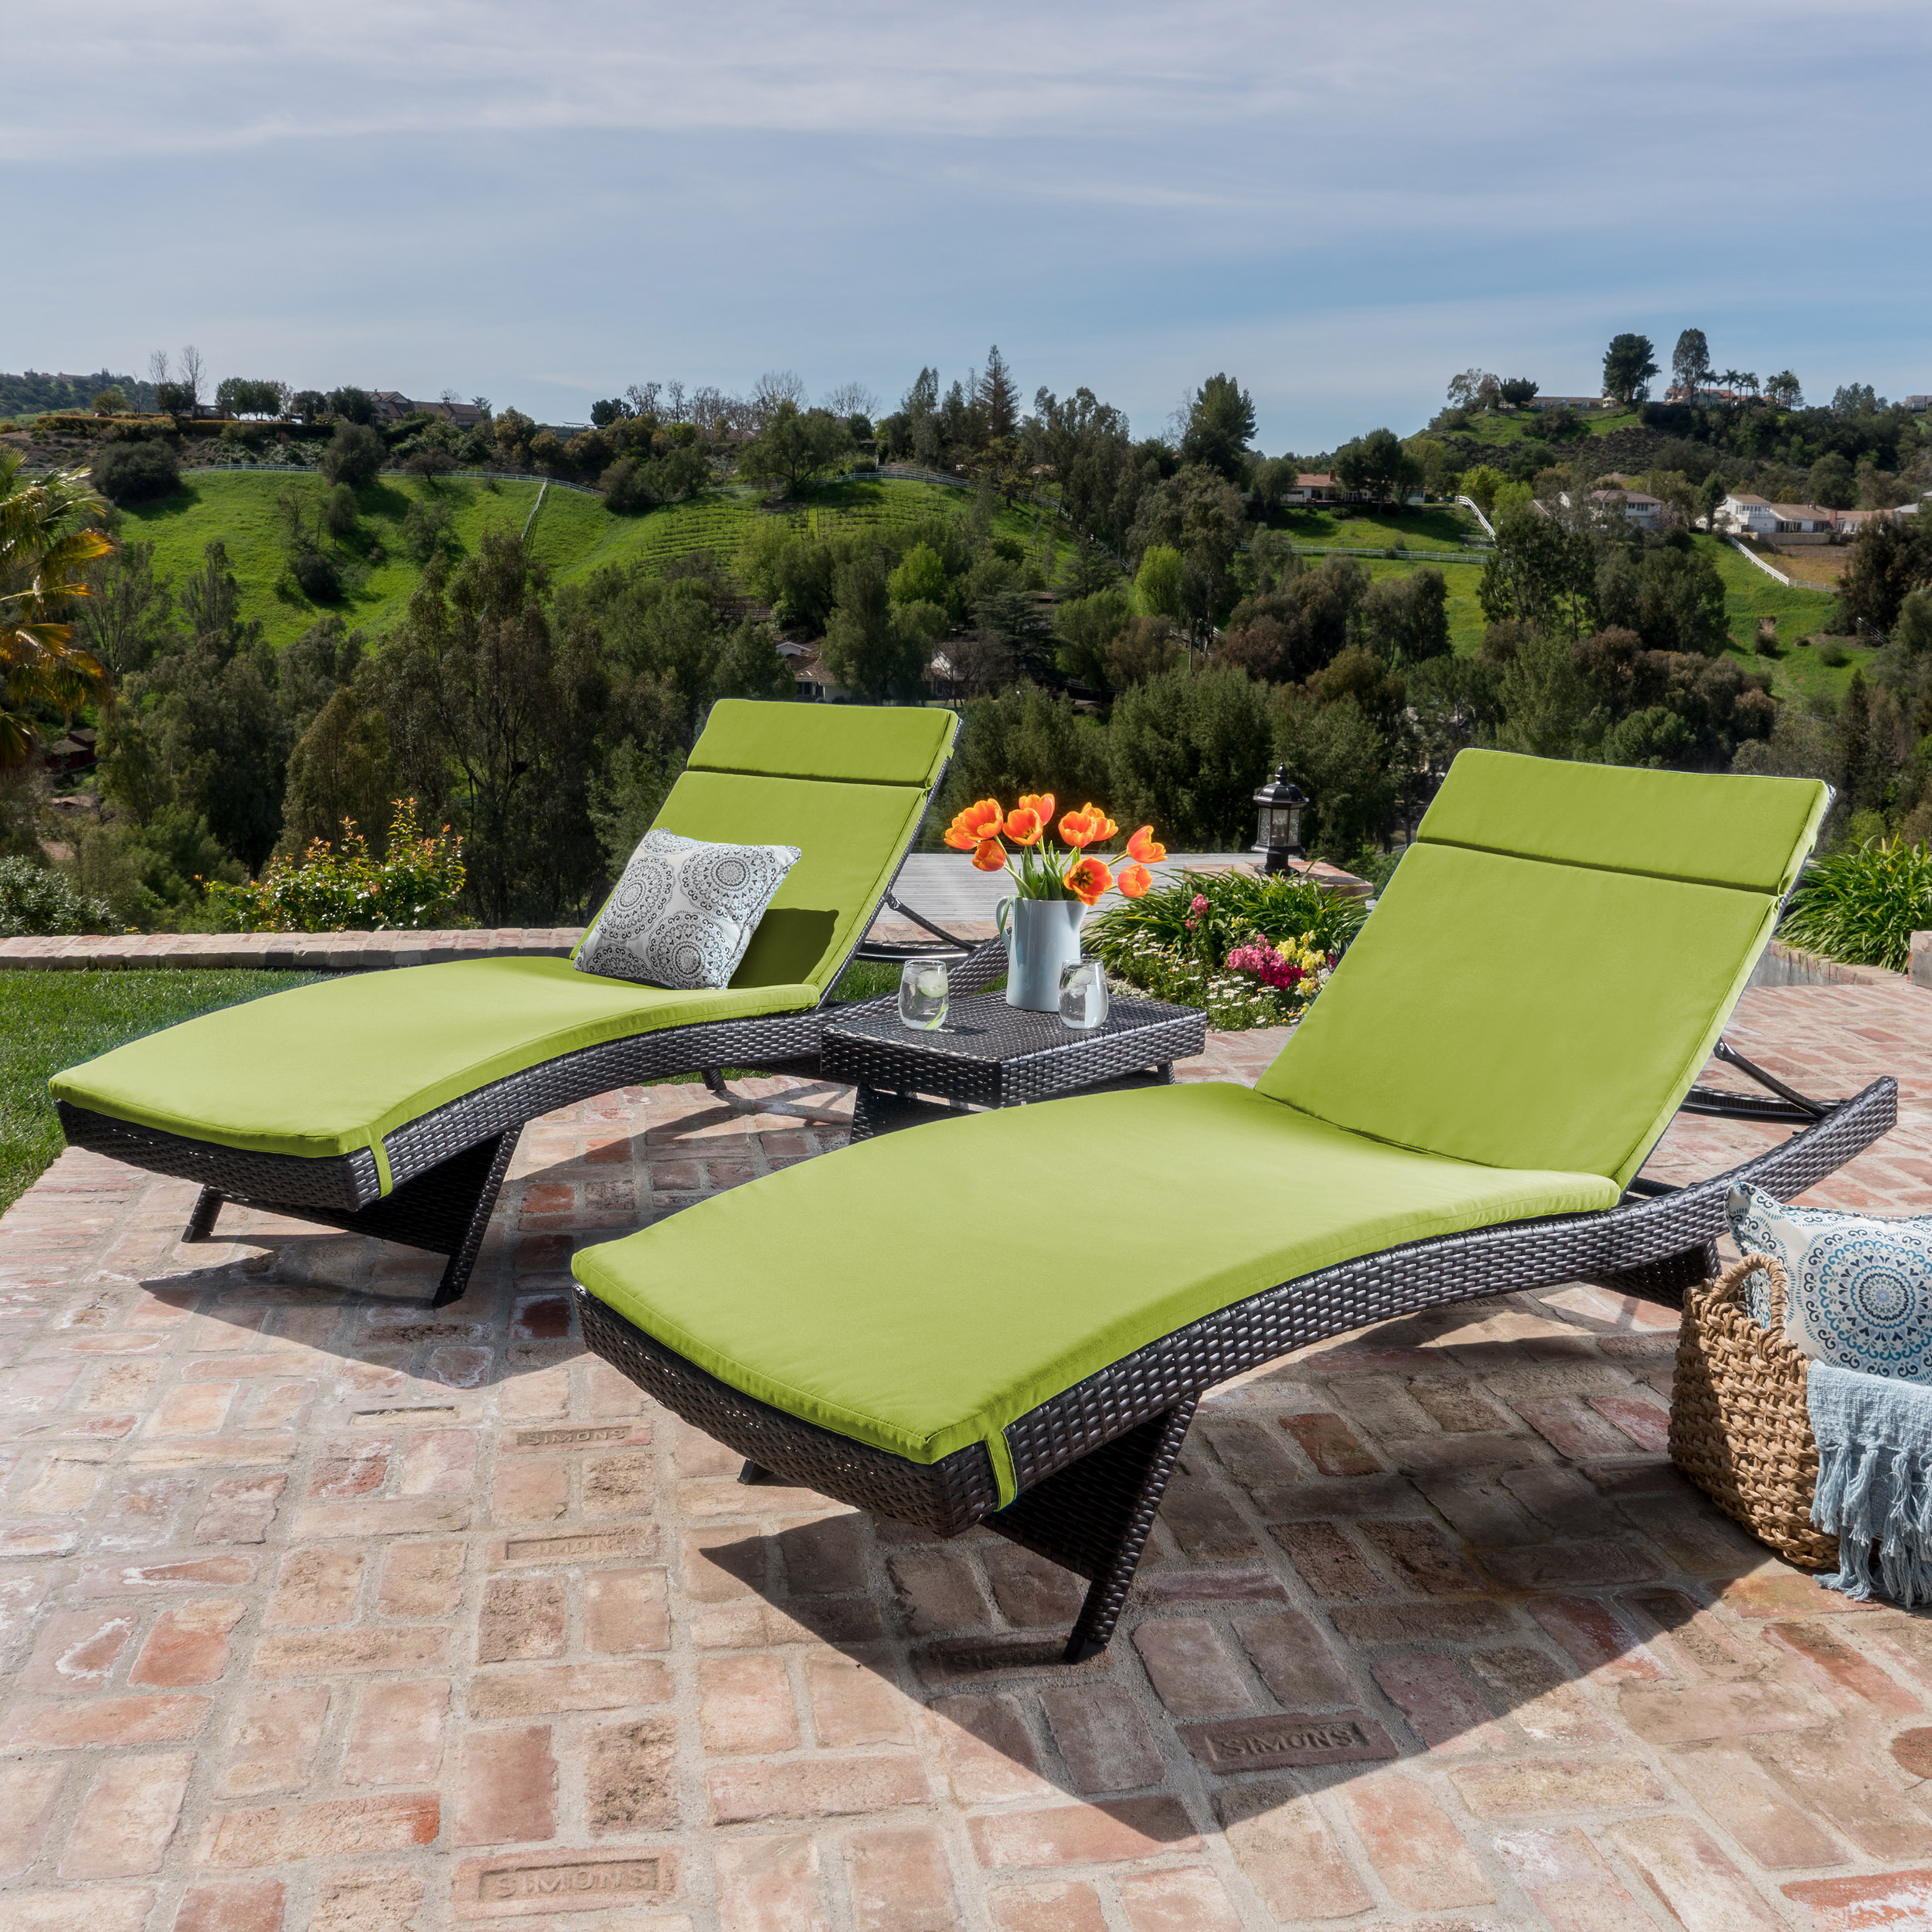 Anthony Outdoor Wicker 3-piece Adjustable Chaise Lounge Set with Cushions, Multibrown and Bright Green